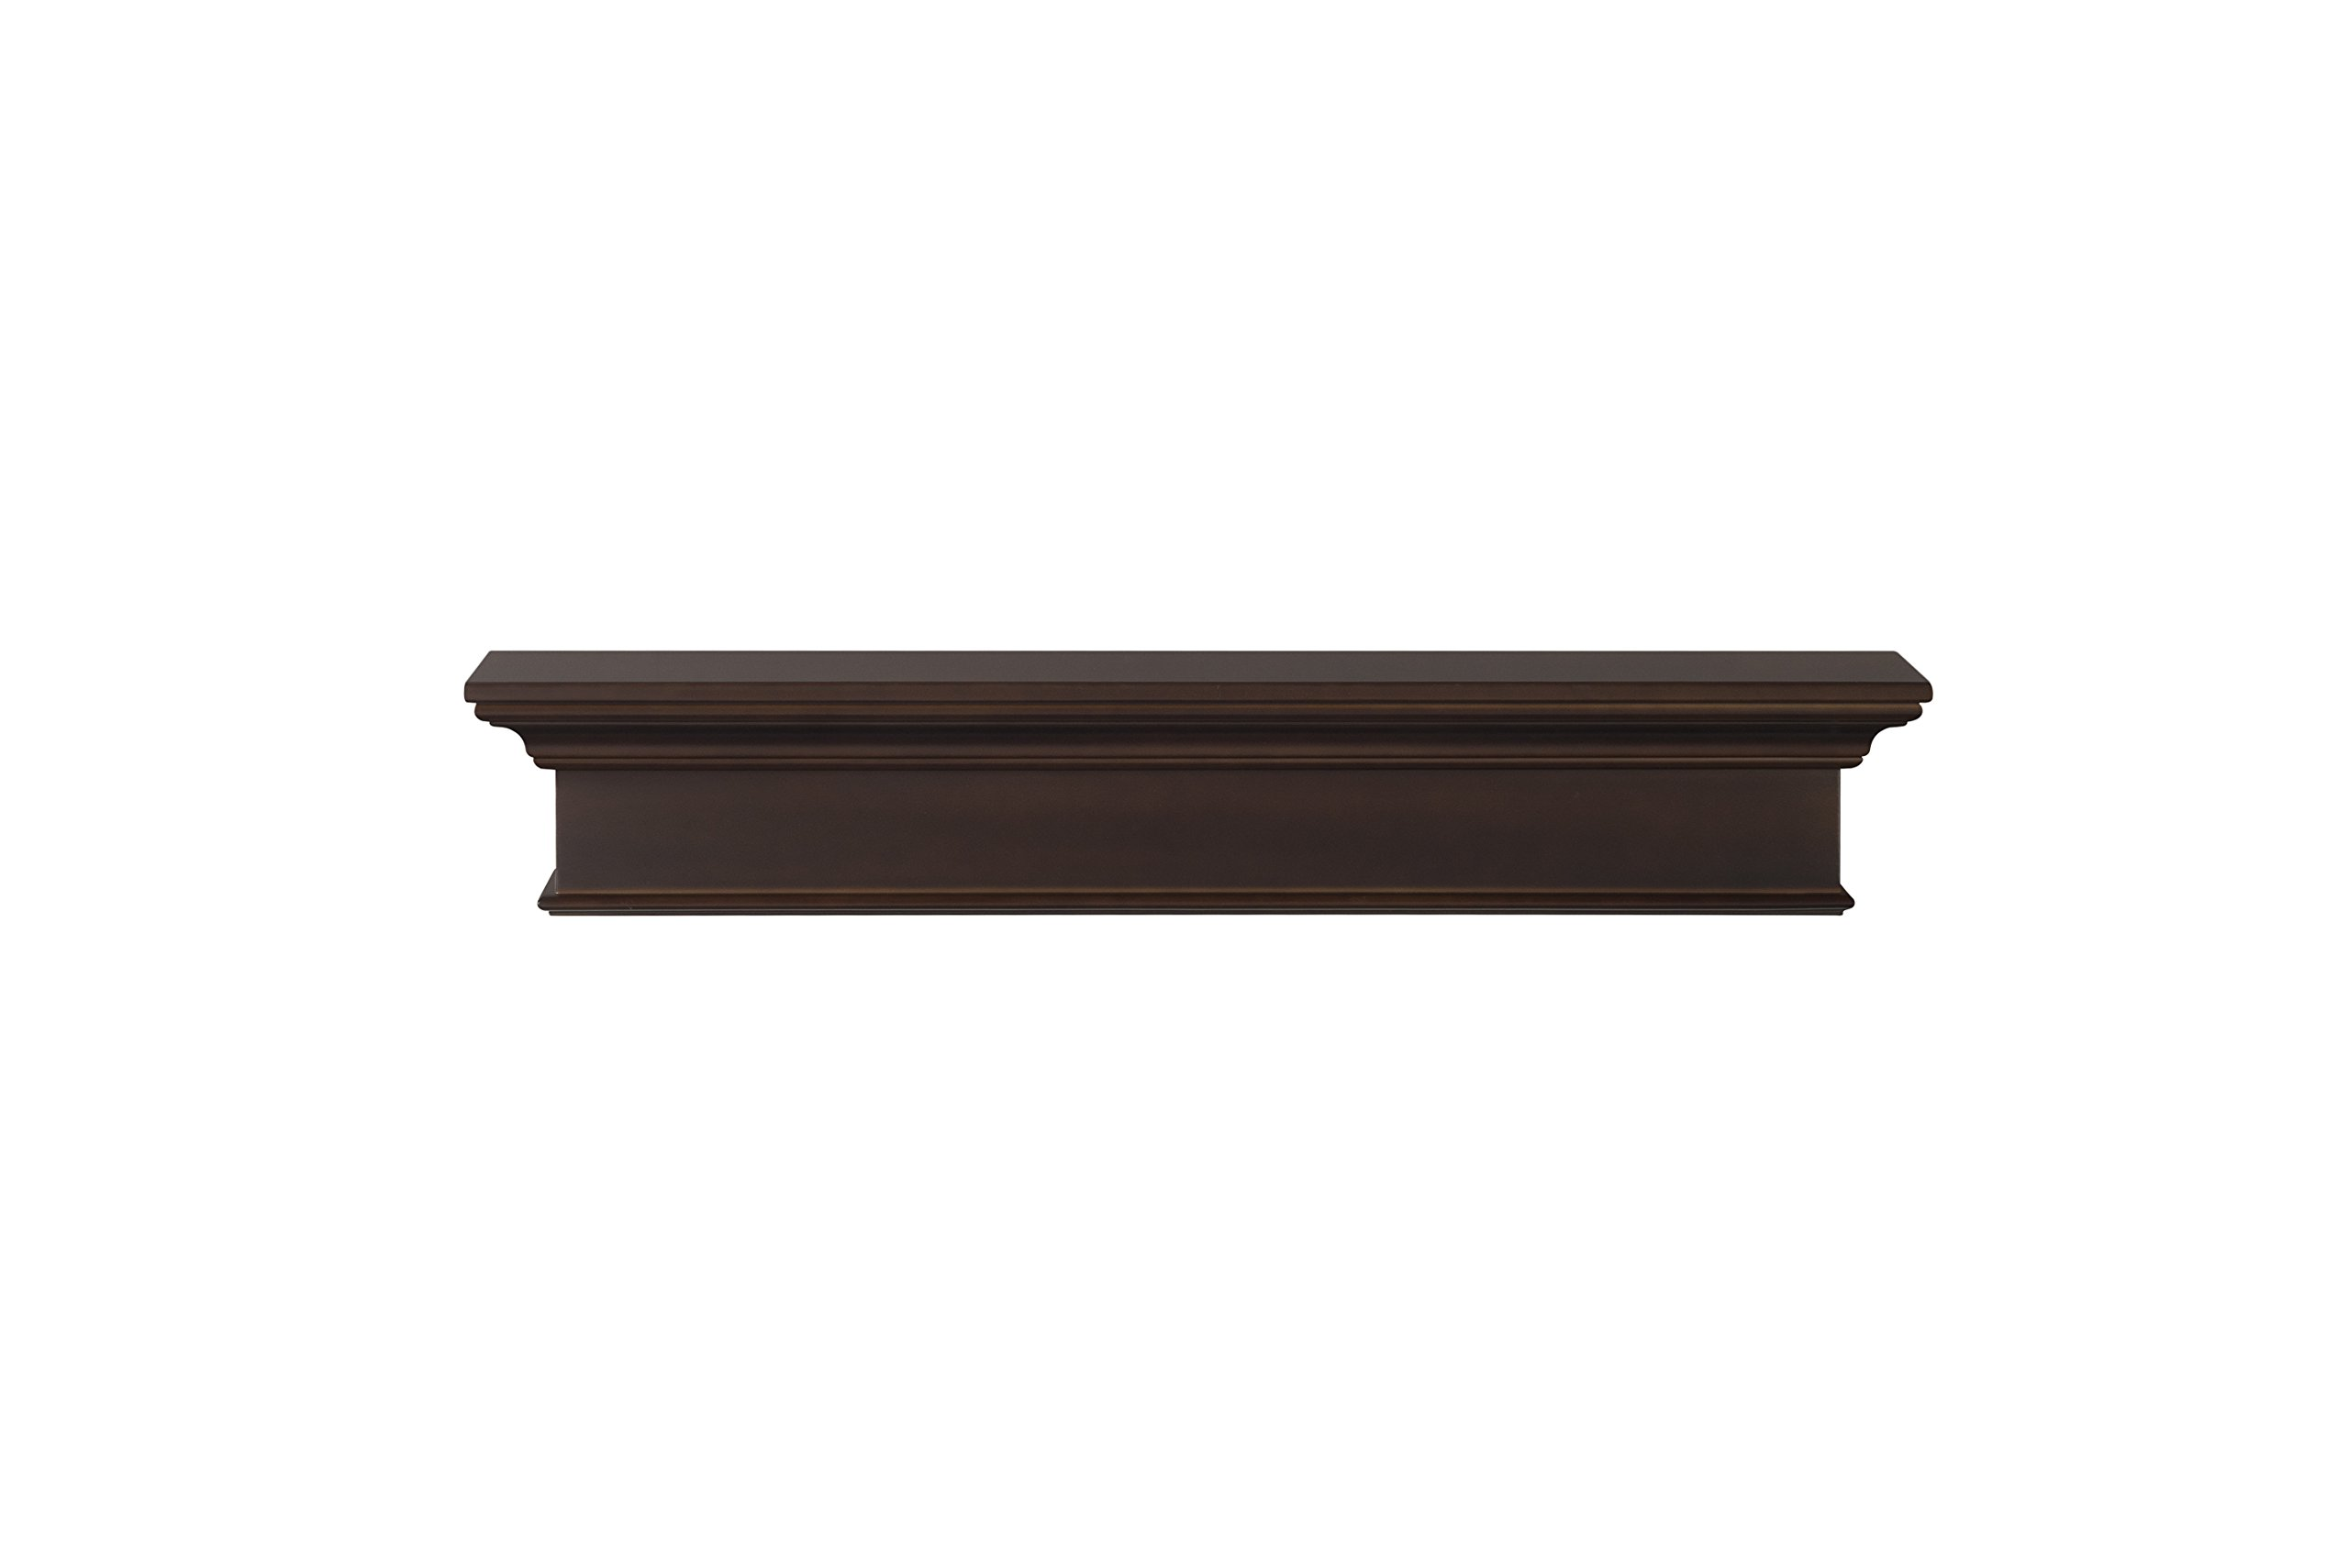 Pearl Mantels Henry 48-Inch Mantel Shelf, Chocolate Brown by Pearl Mantels